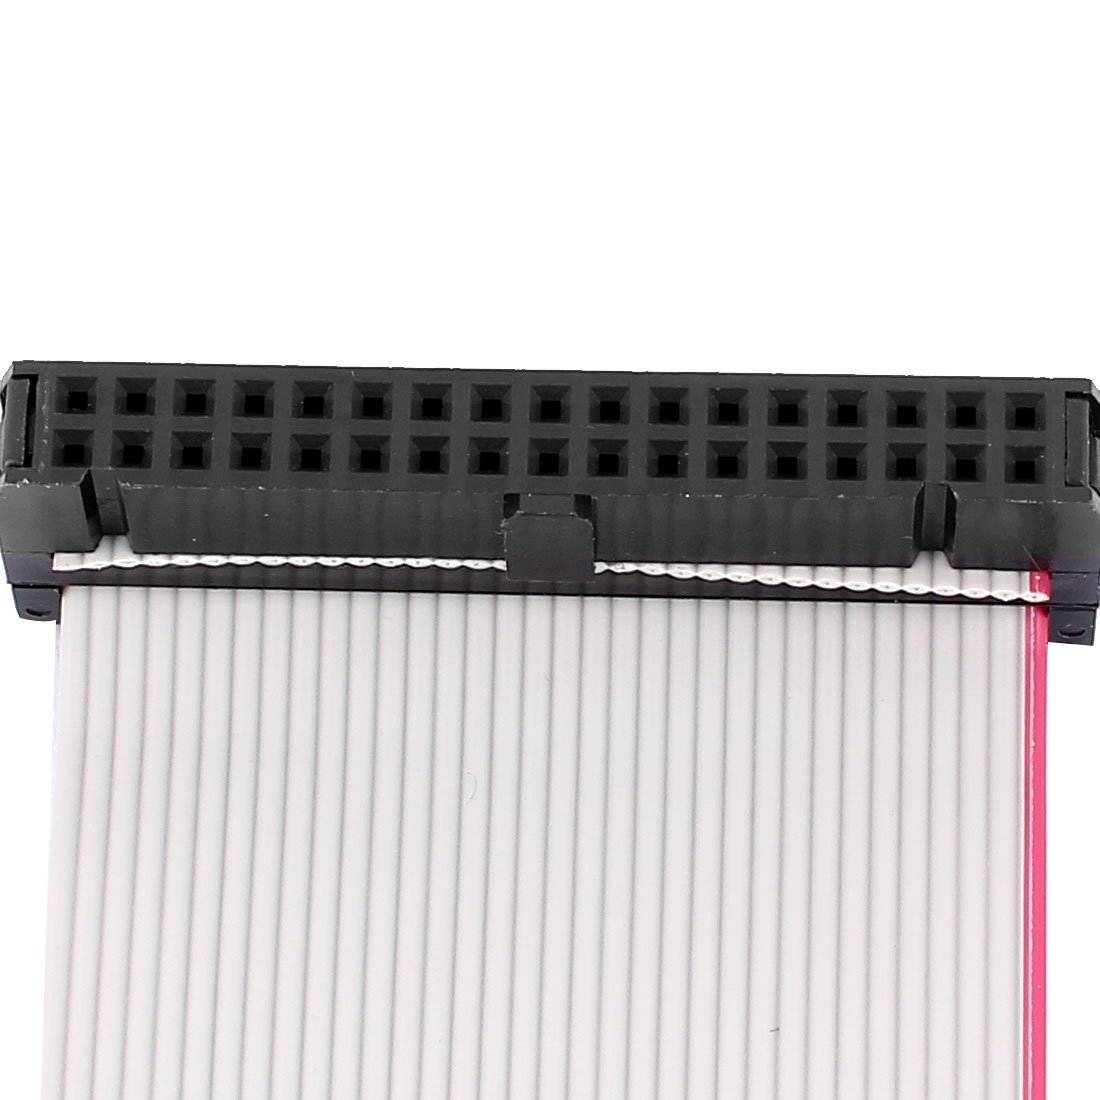 Female to Female uxcell IDC Extension Flat Ribbon Cable 34-Pin 34 Way 2.54 mm Pitch 66 cm Long